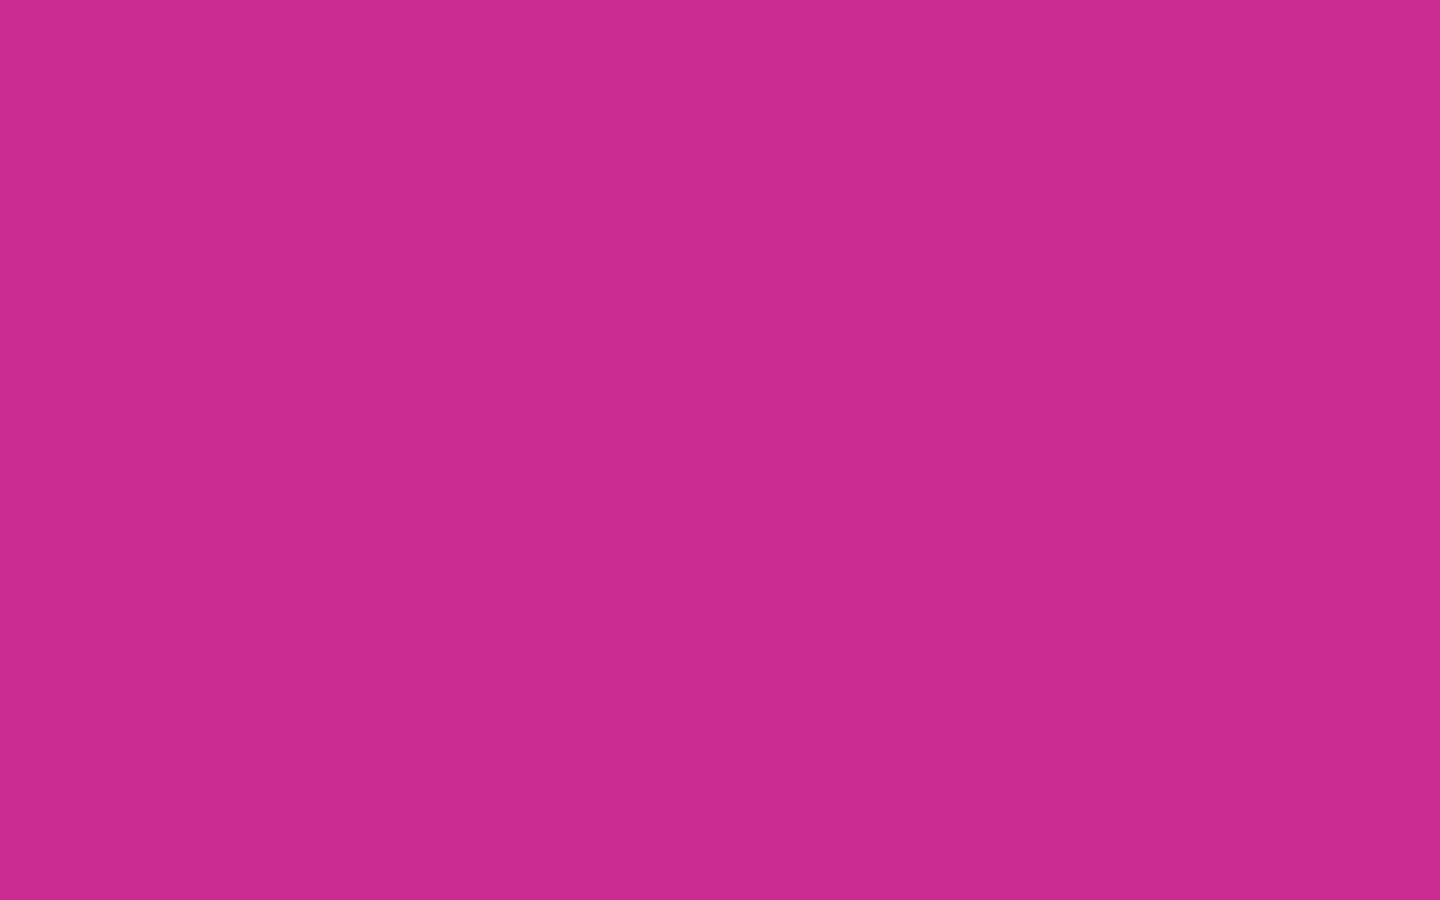 1440x900 Royal Fuchsia Solid Color Background